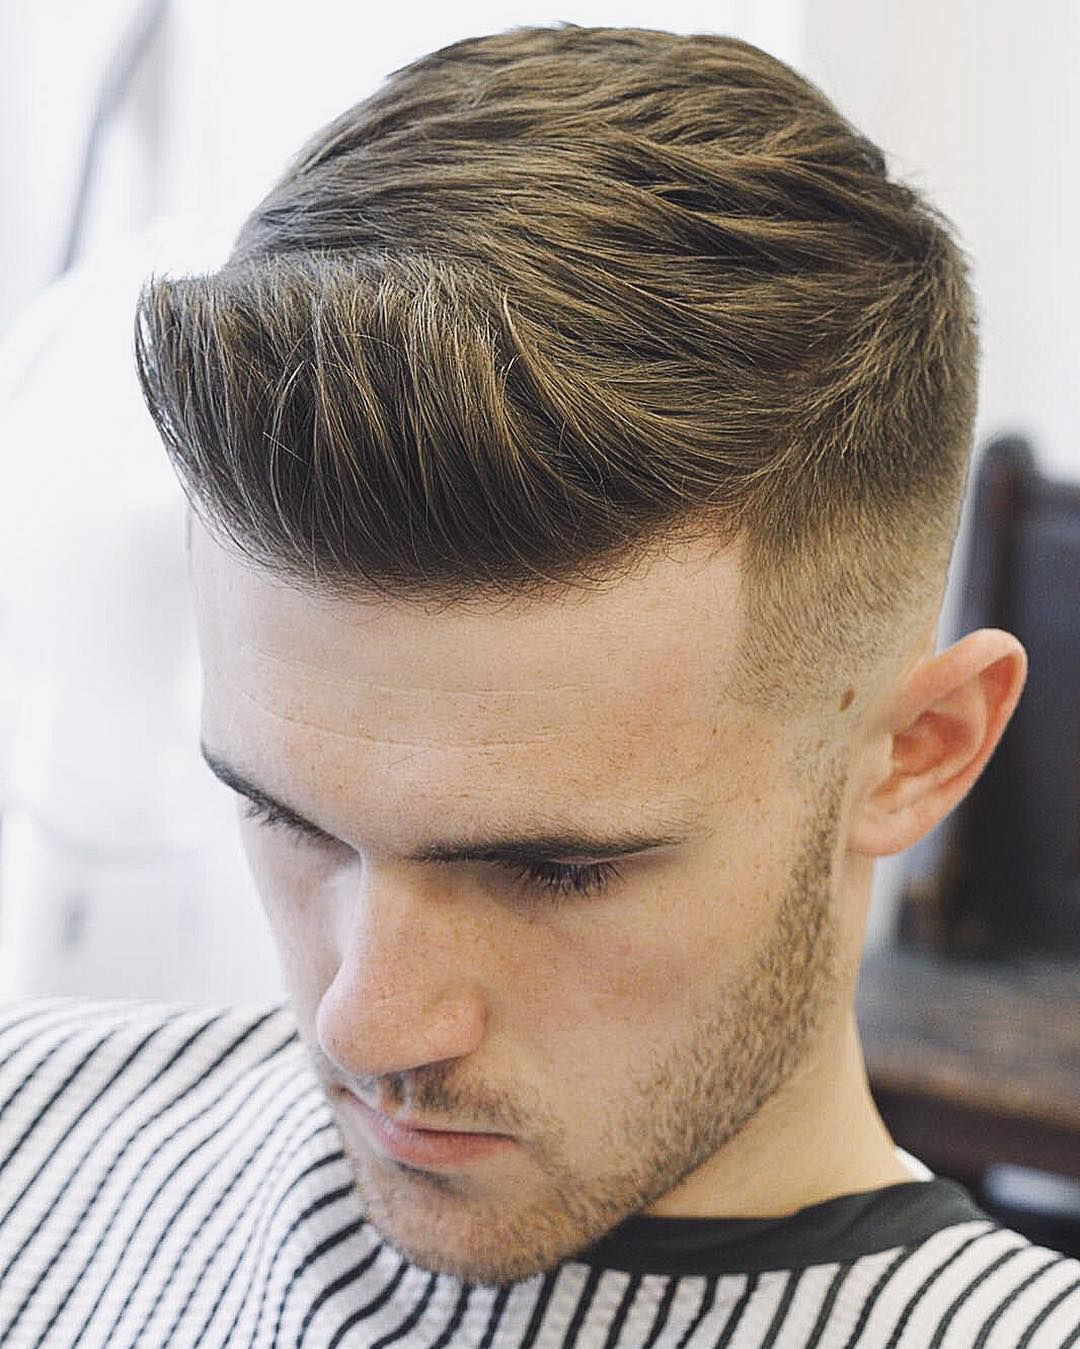 80 new hairstyles for men (2019 update) | haircuts | quiff